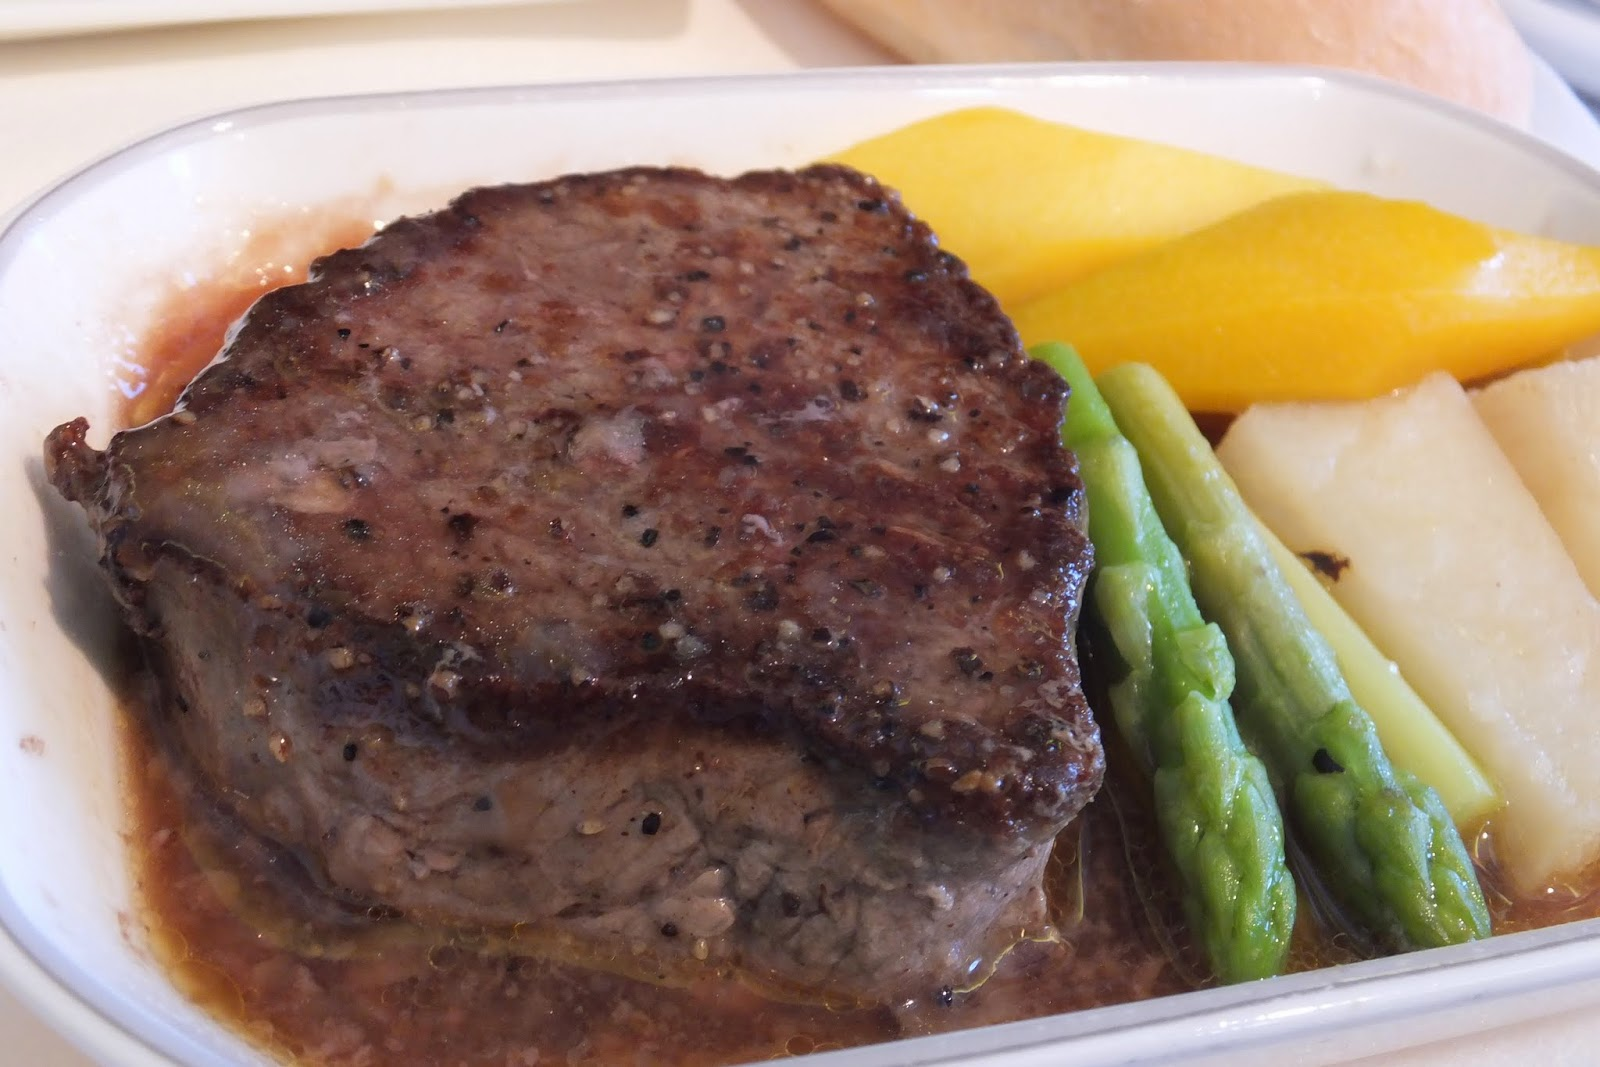 Jal-businessclass-flight-meal-steak